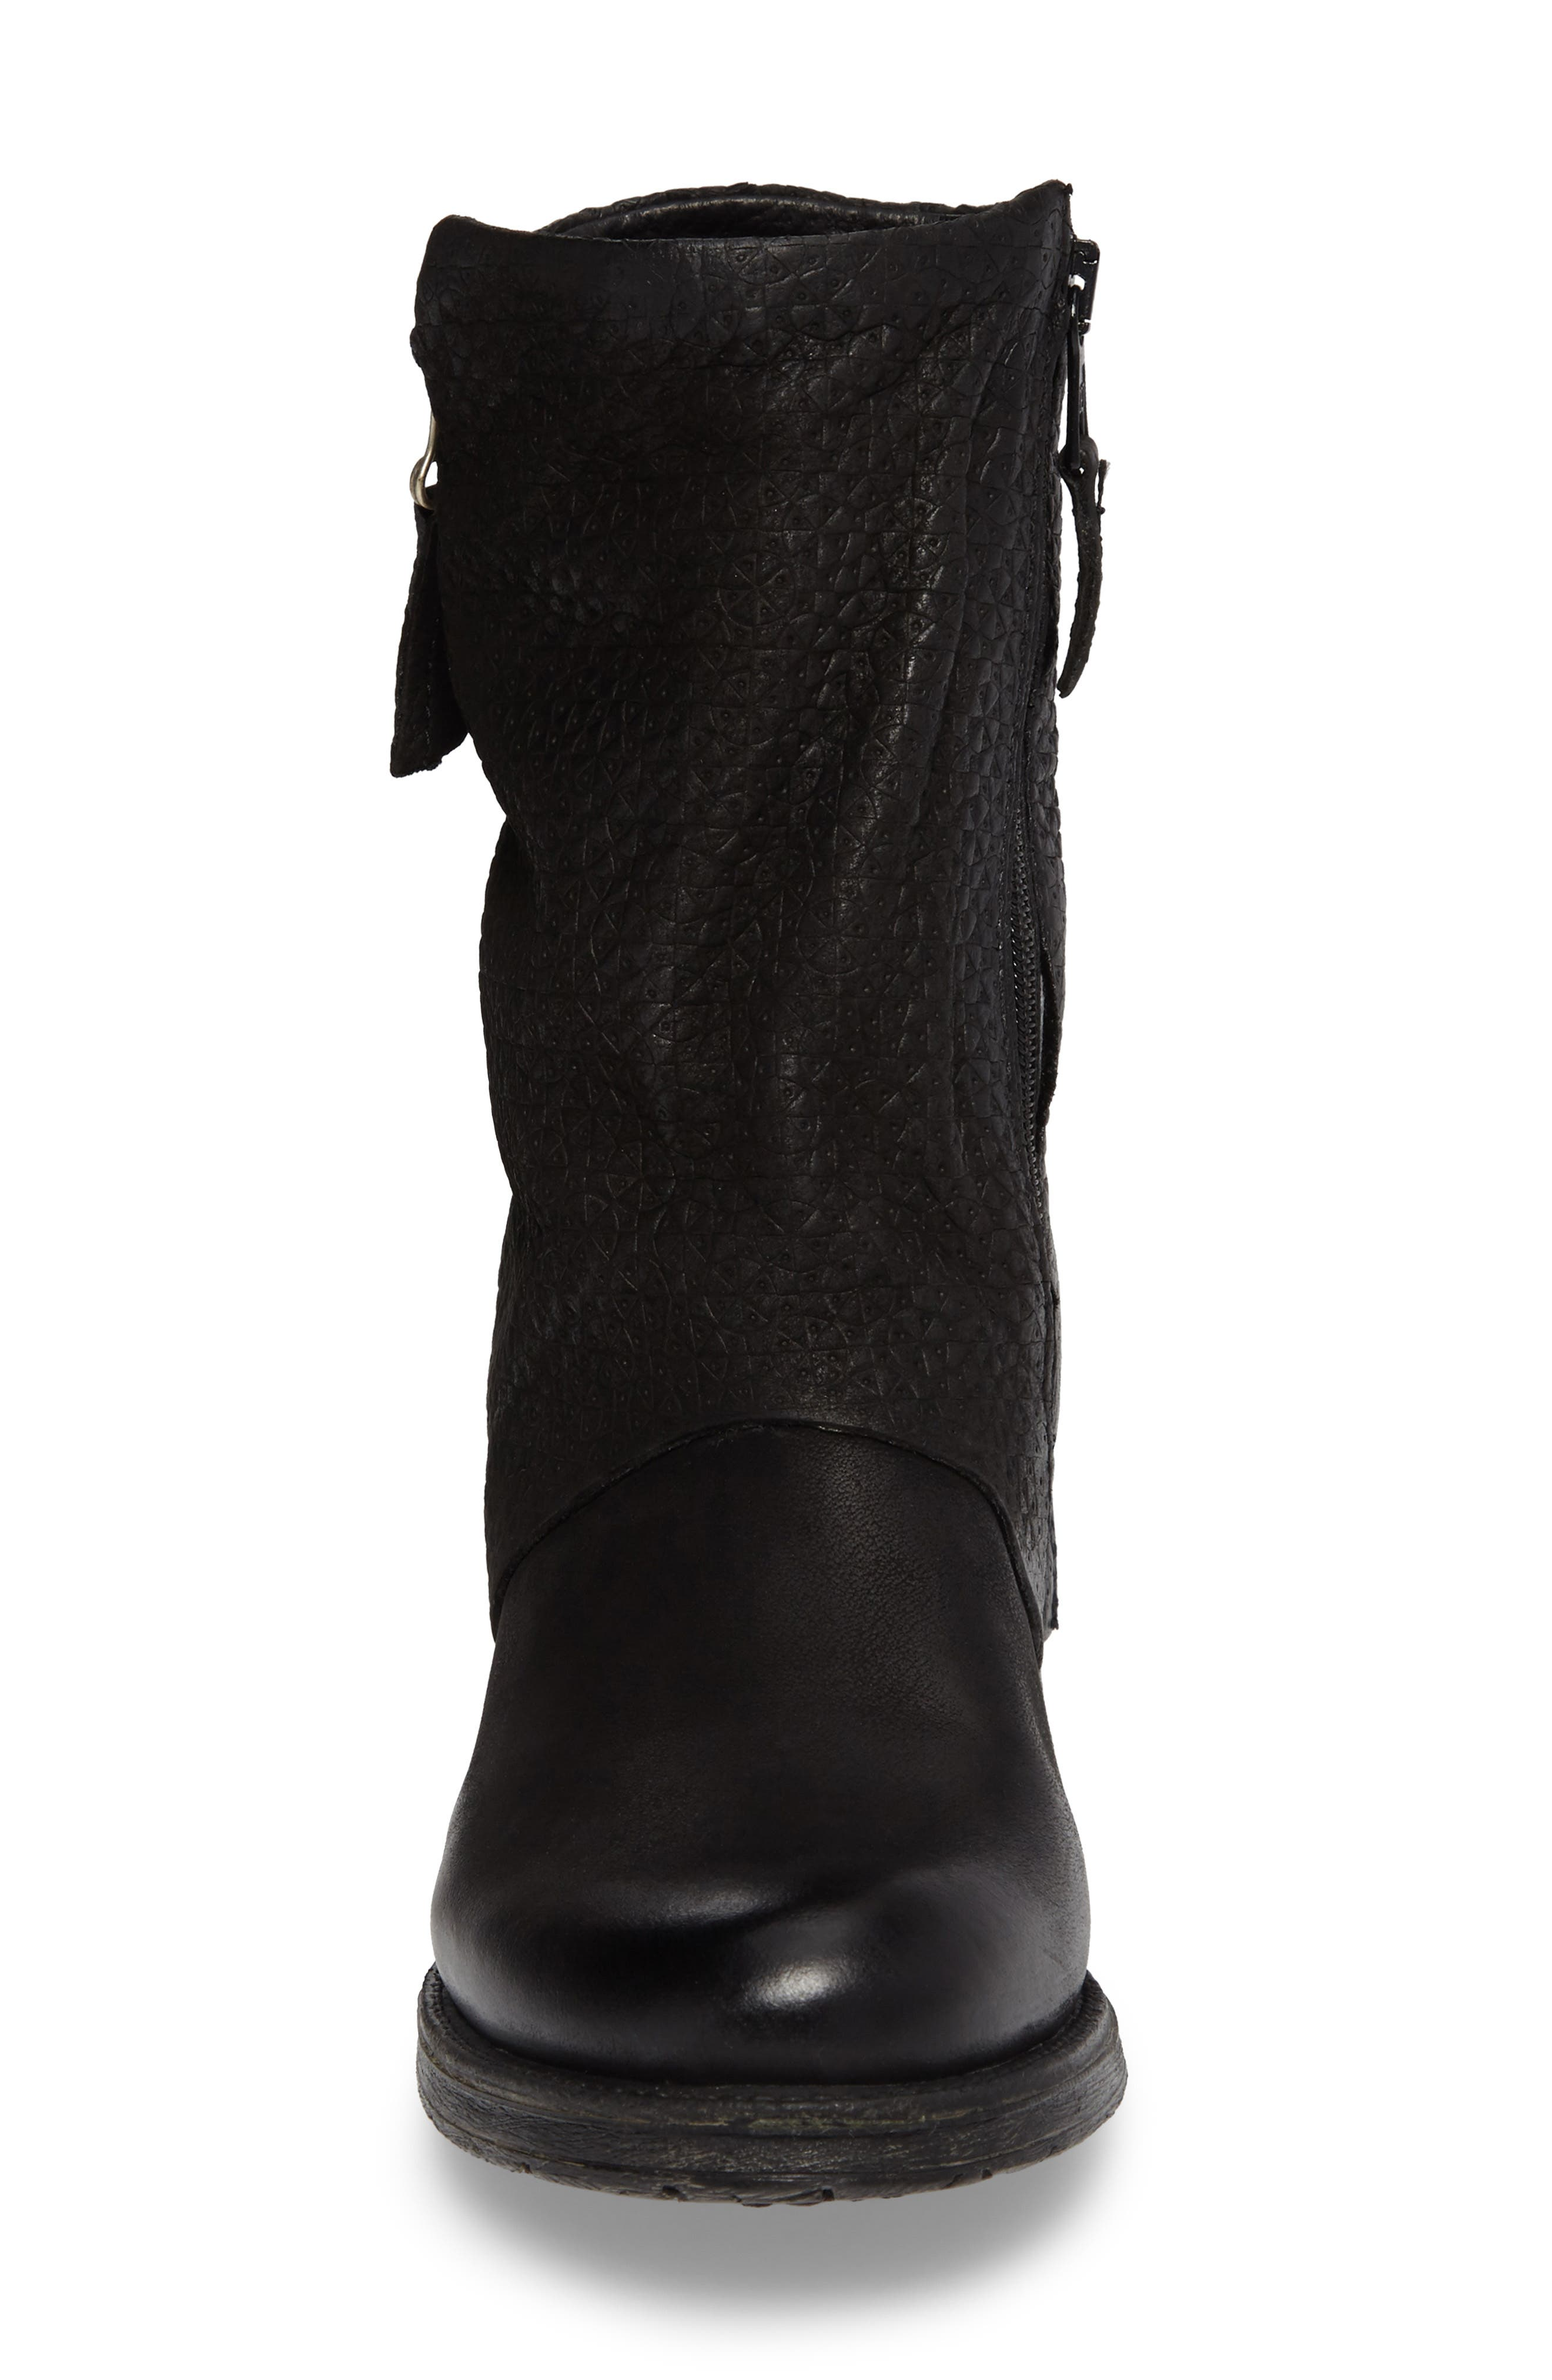 Nugget Asymmetrical Textured Boot,                             Alternate thumbnail 4, color,                             001